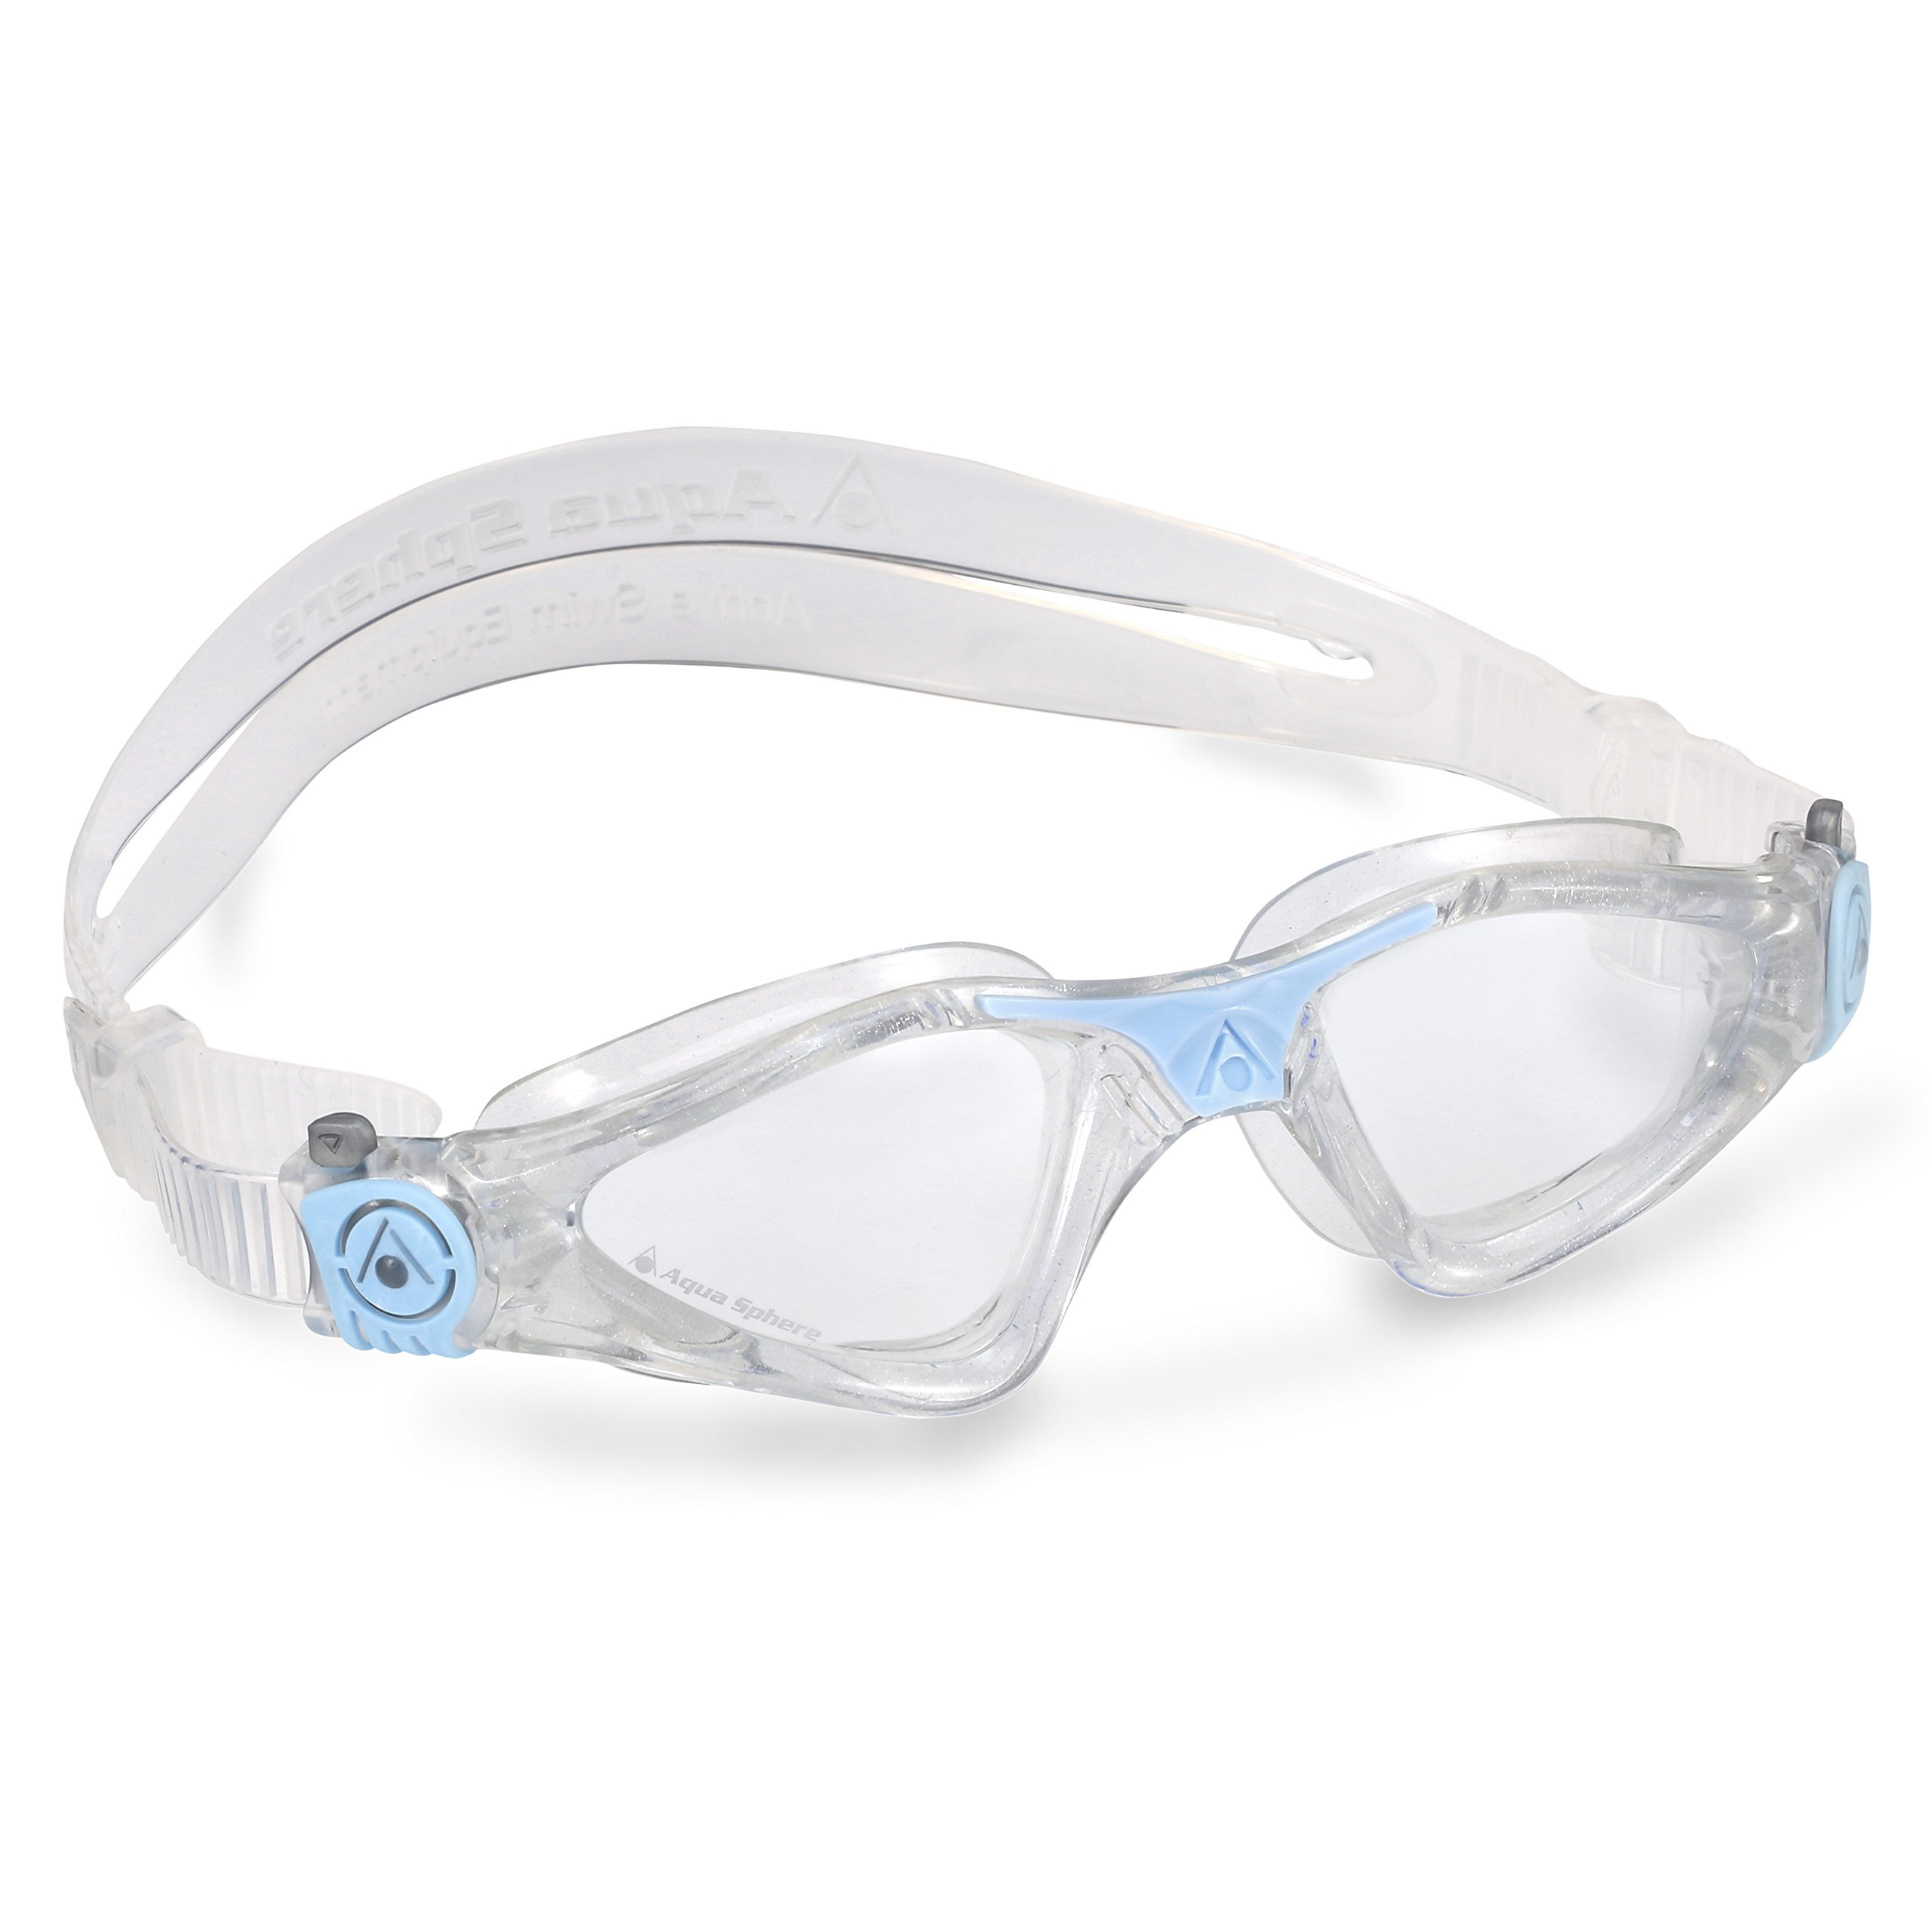 Aqua Sphere Kayenne Ladies Swimming Goggle with Clear Lens, Clear & Blue UV Protection Anti Fog Swim Goggles for Women by Aqua Sphere (Image #1)